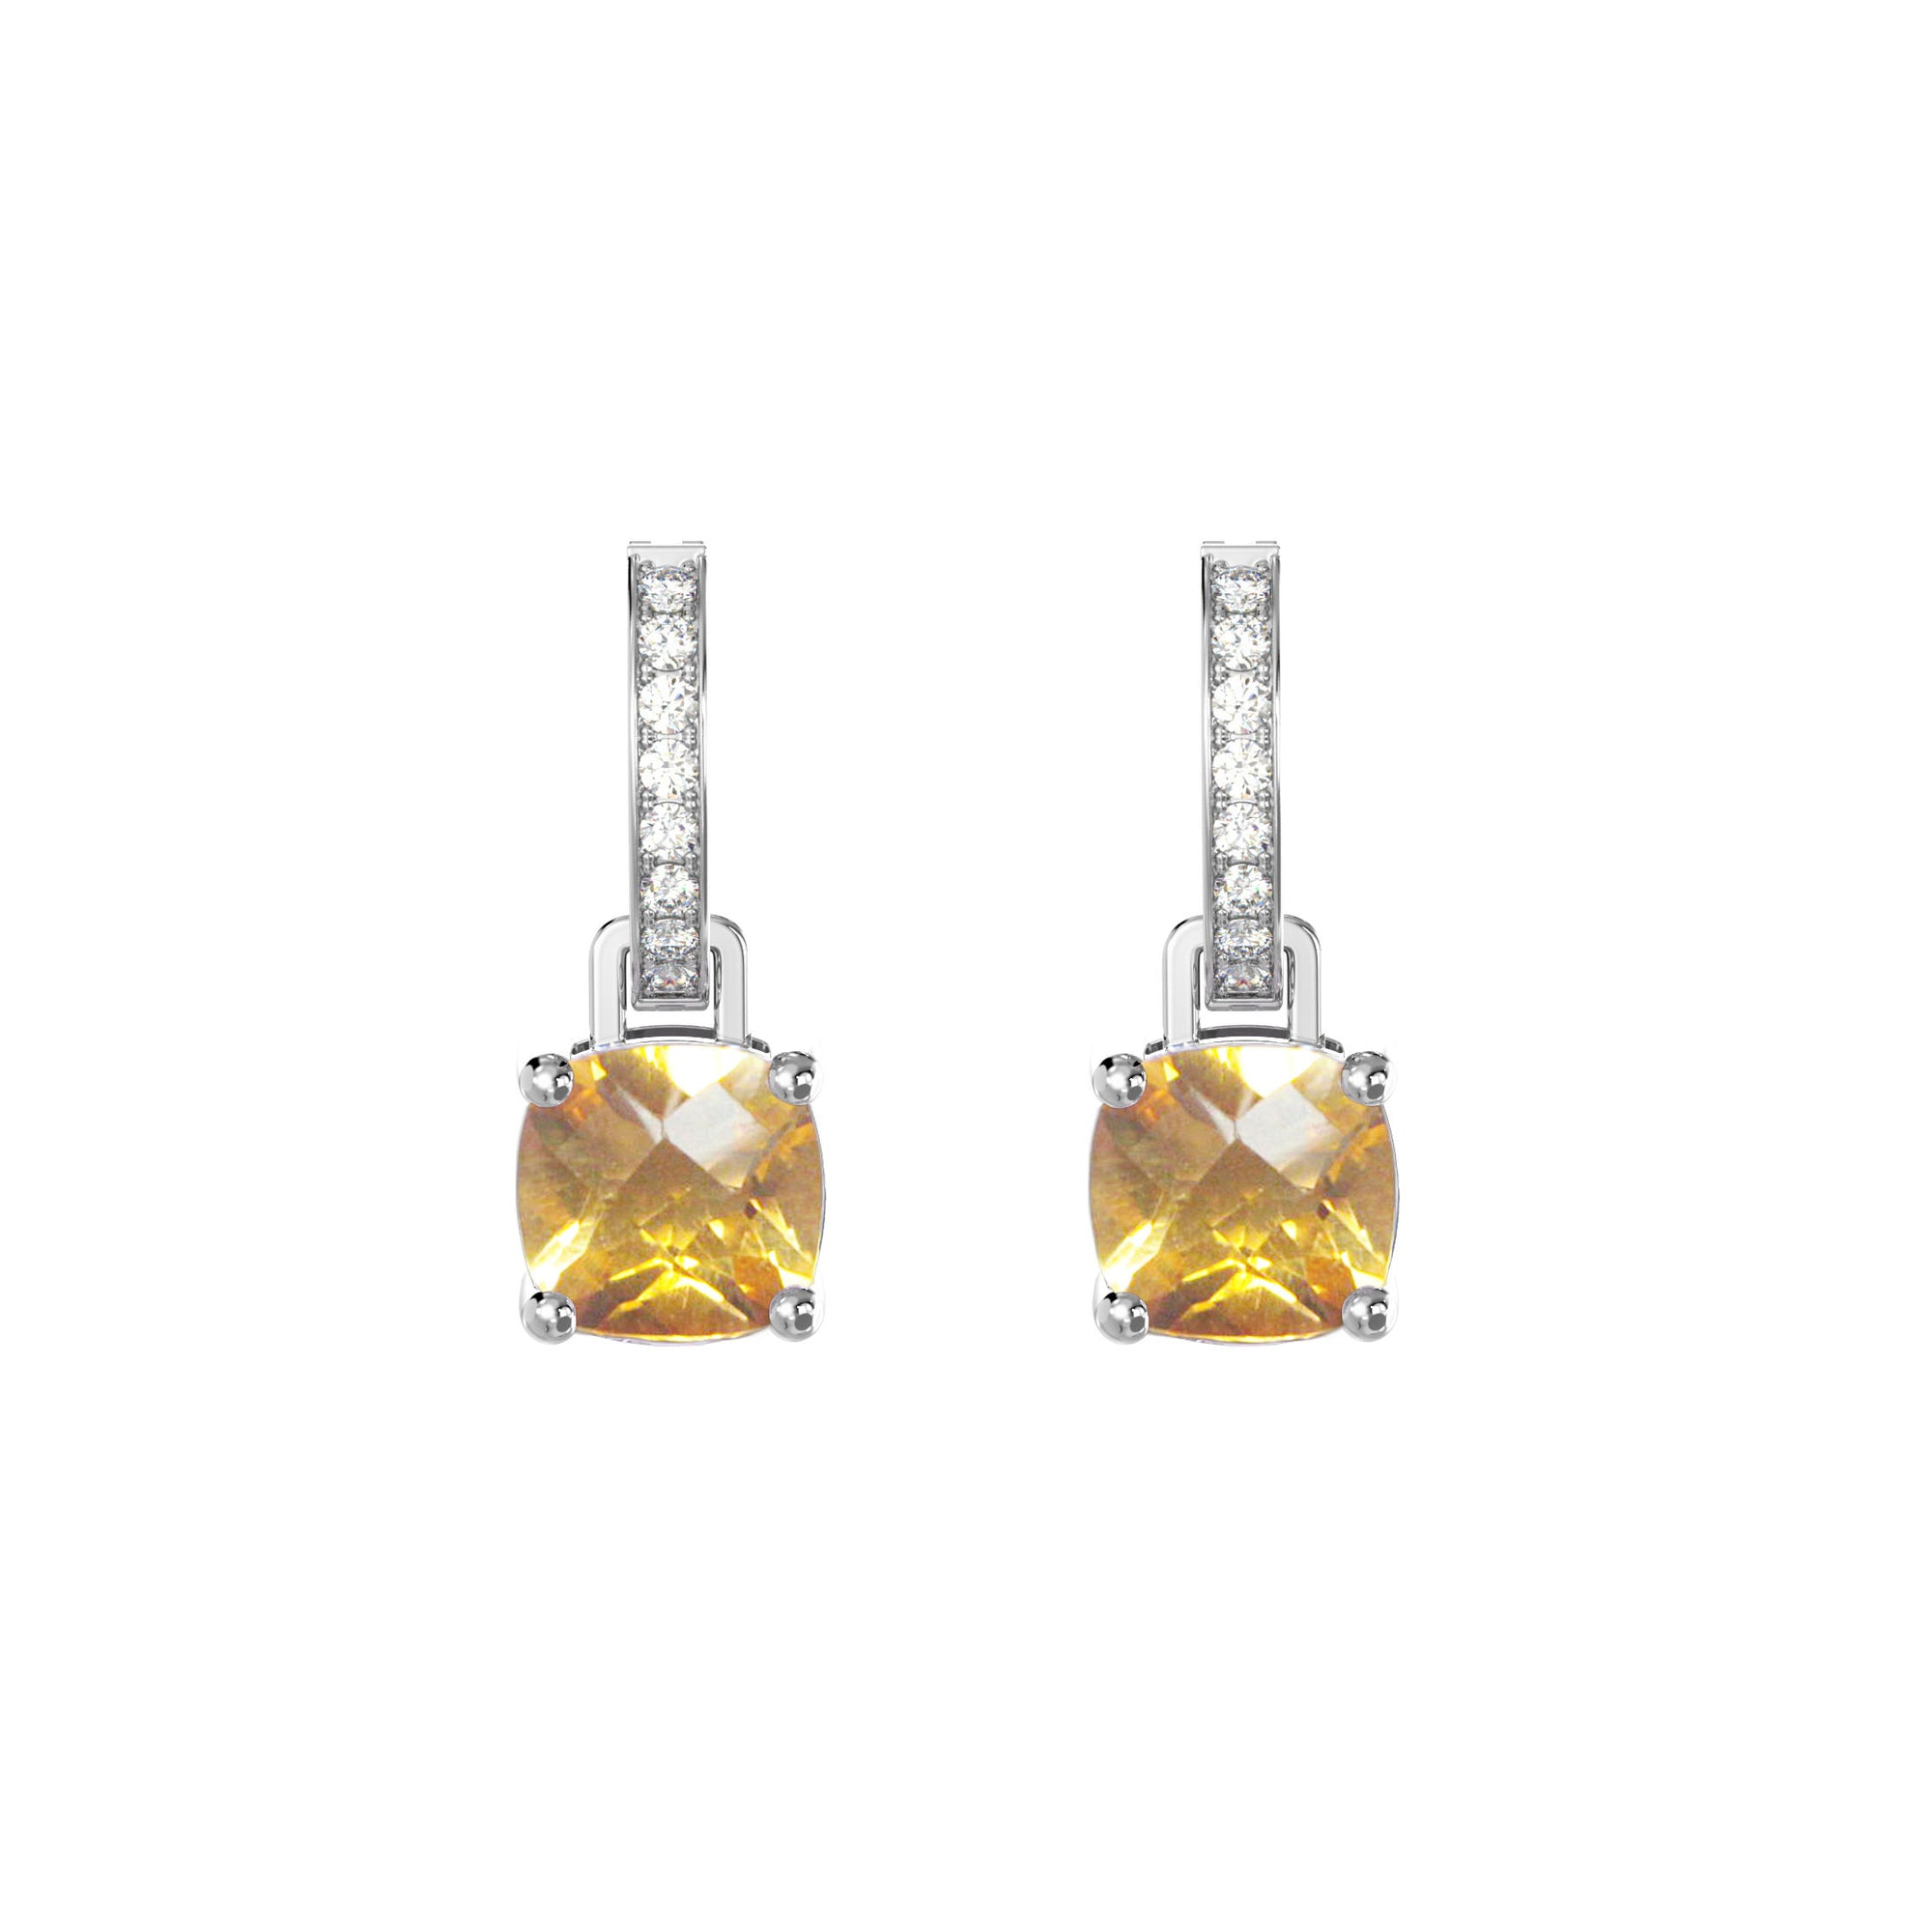 925 Silver Luxe Series Earrings Charms - Wylie (Citrine)